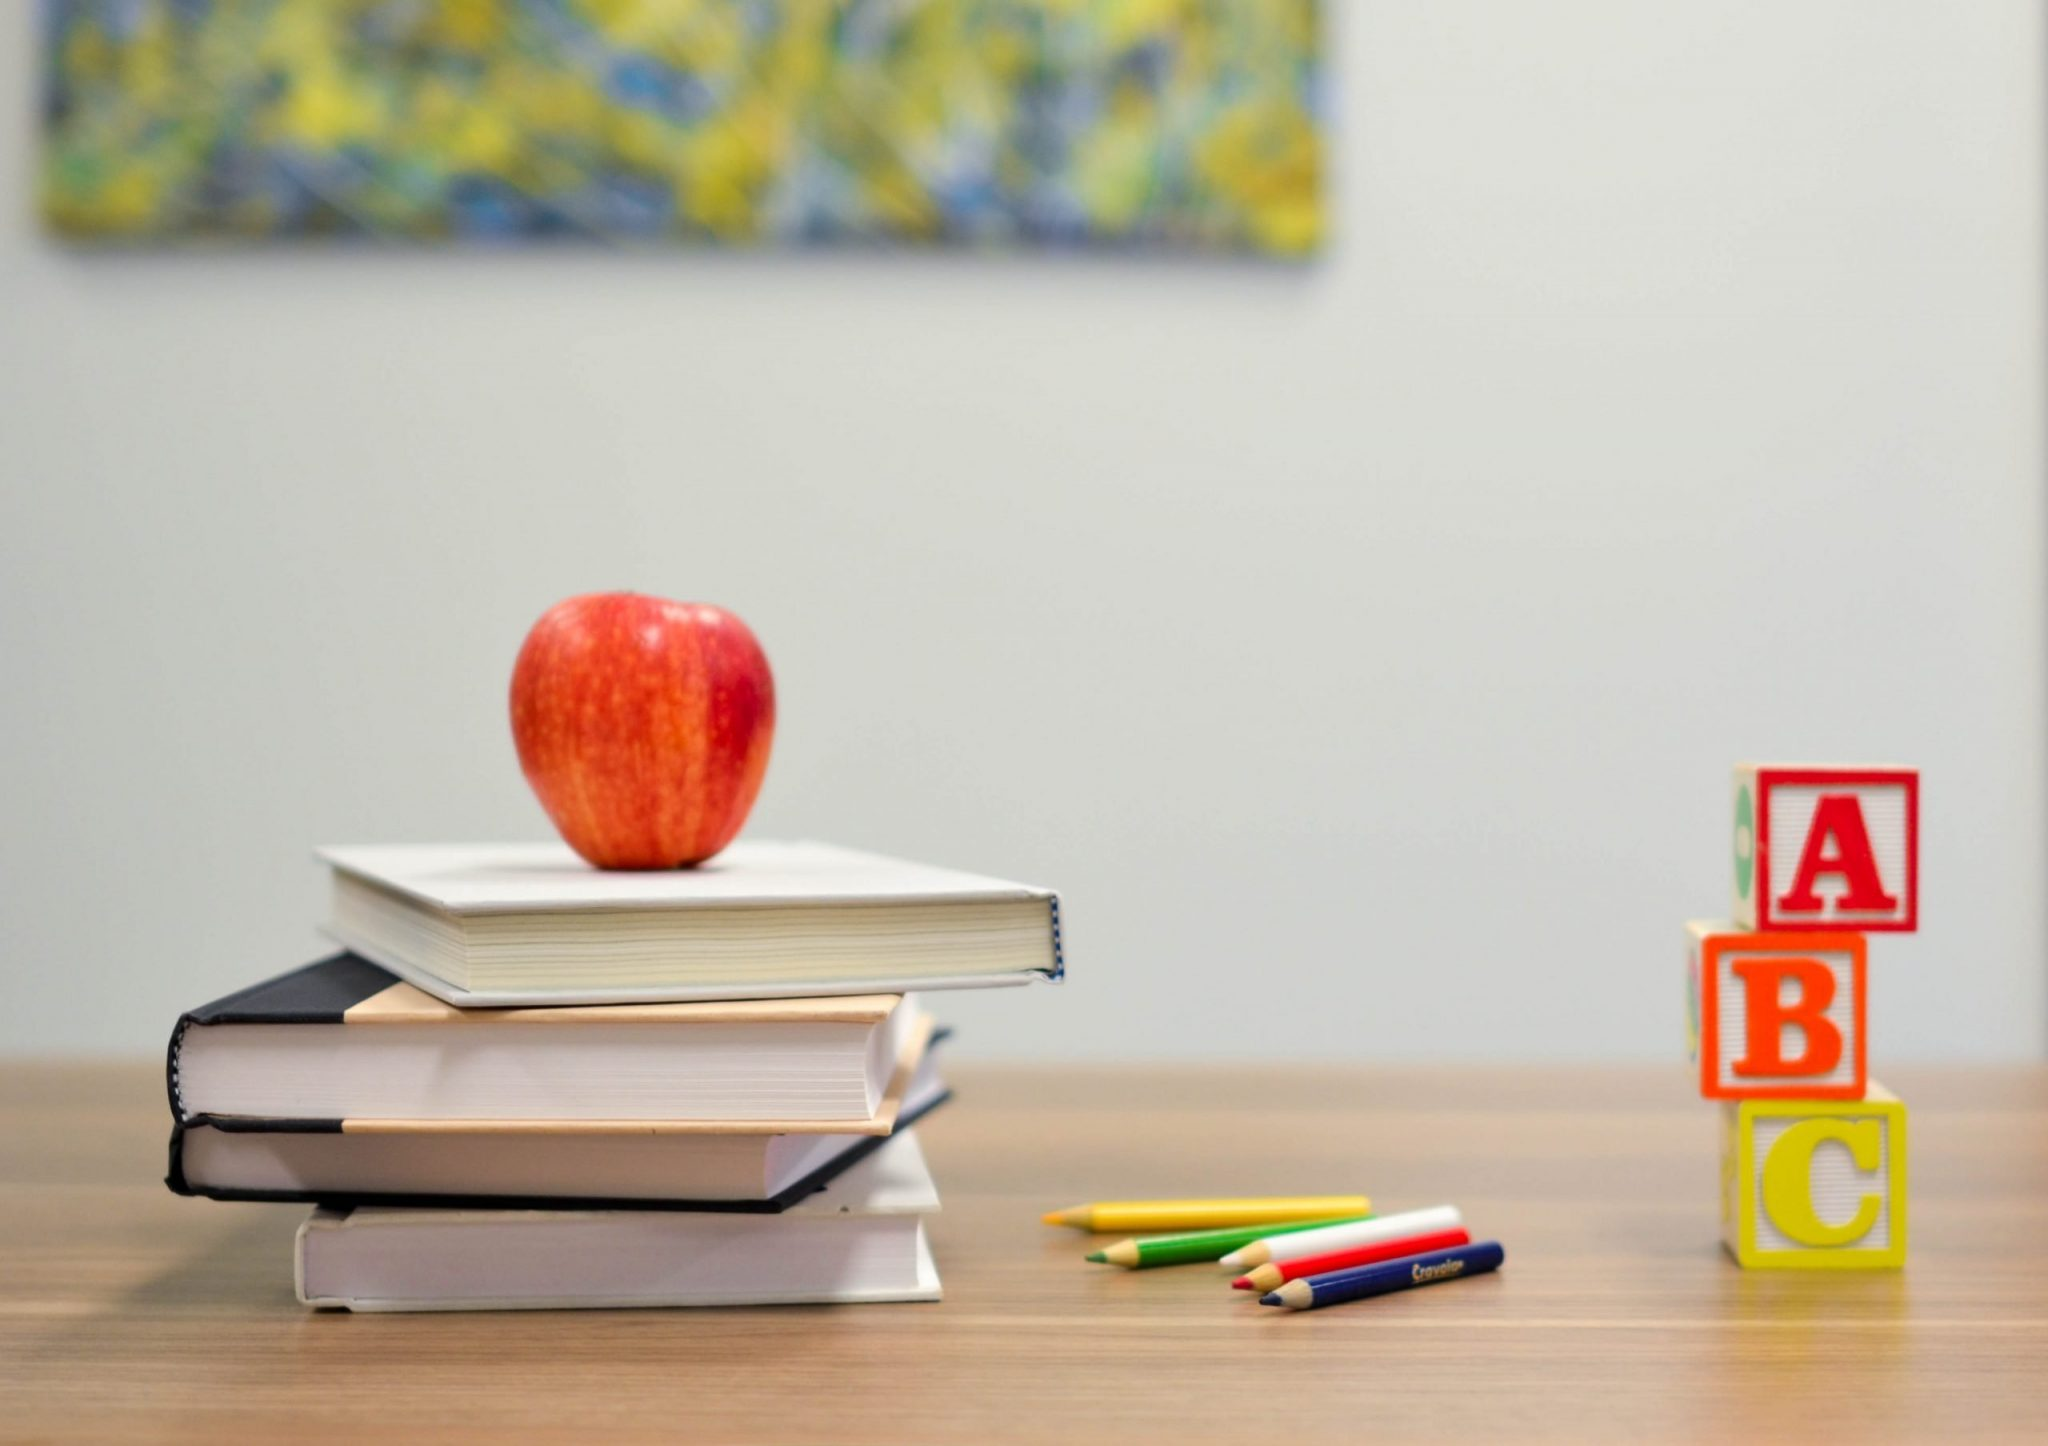 Picture of school books and an apple